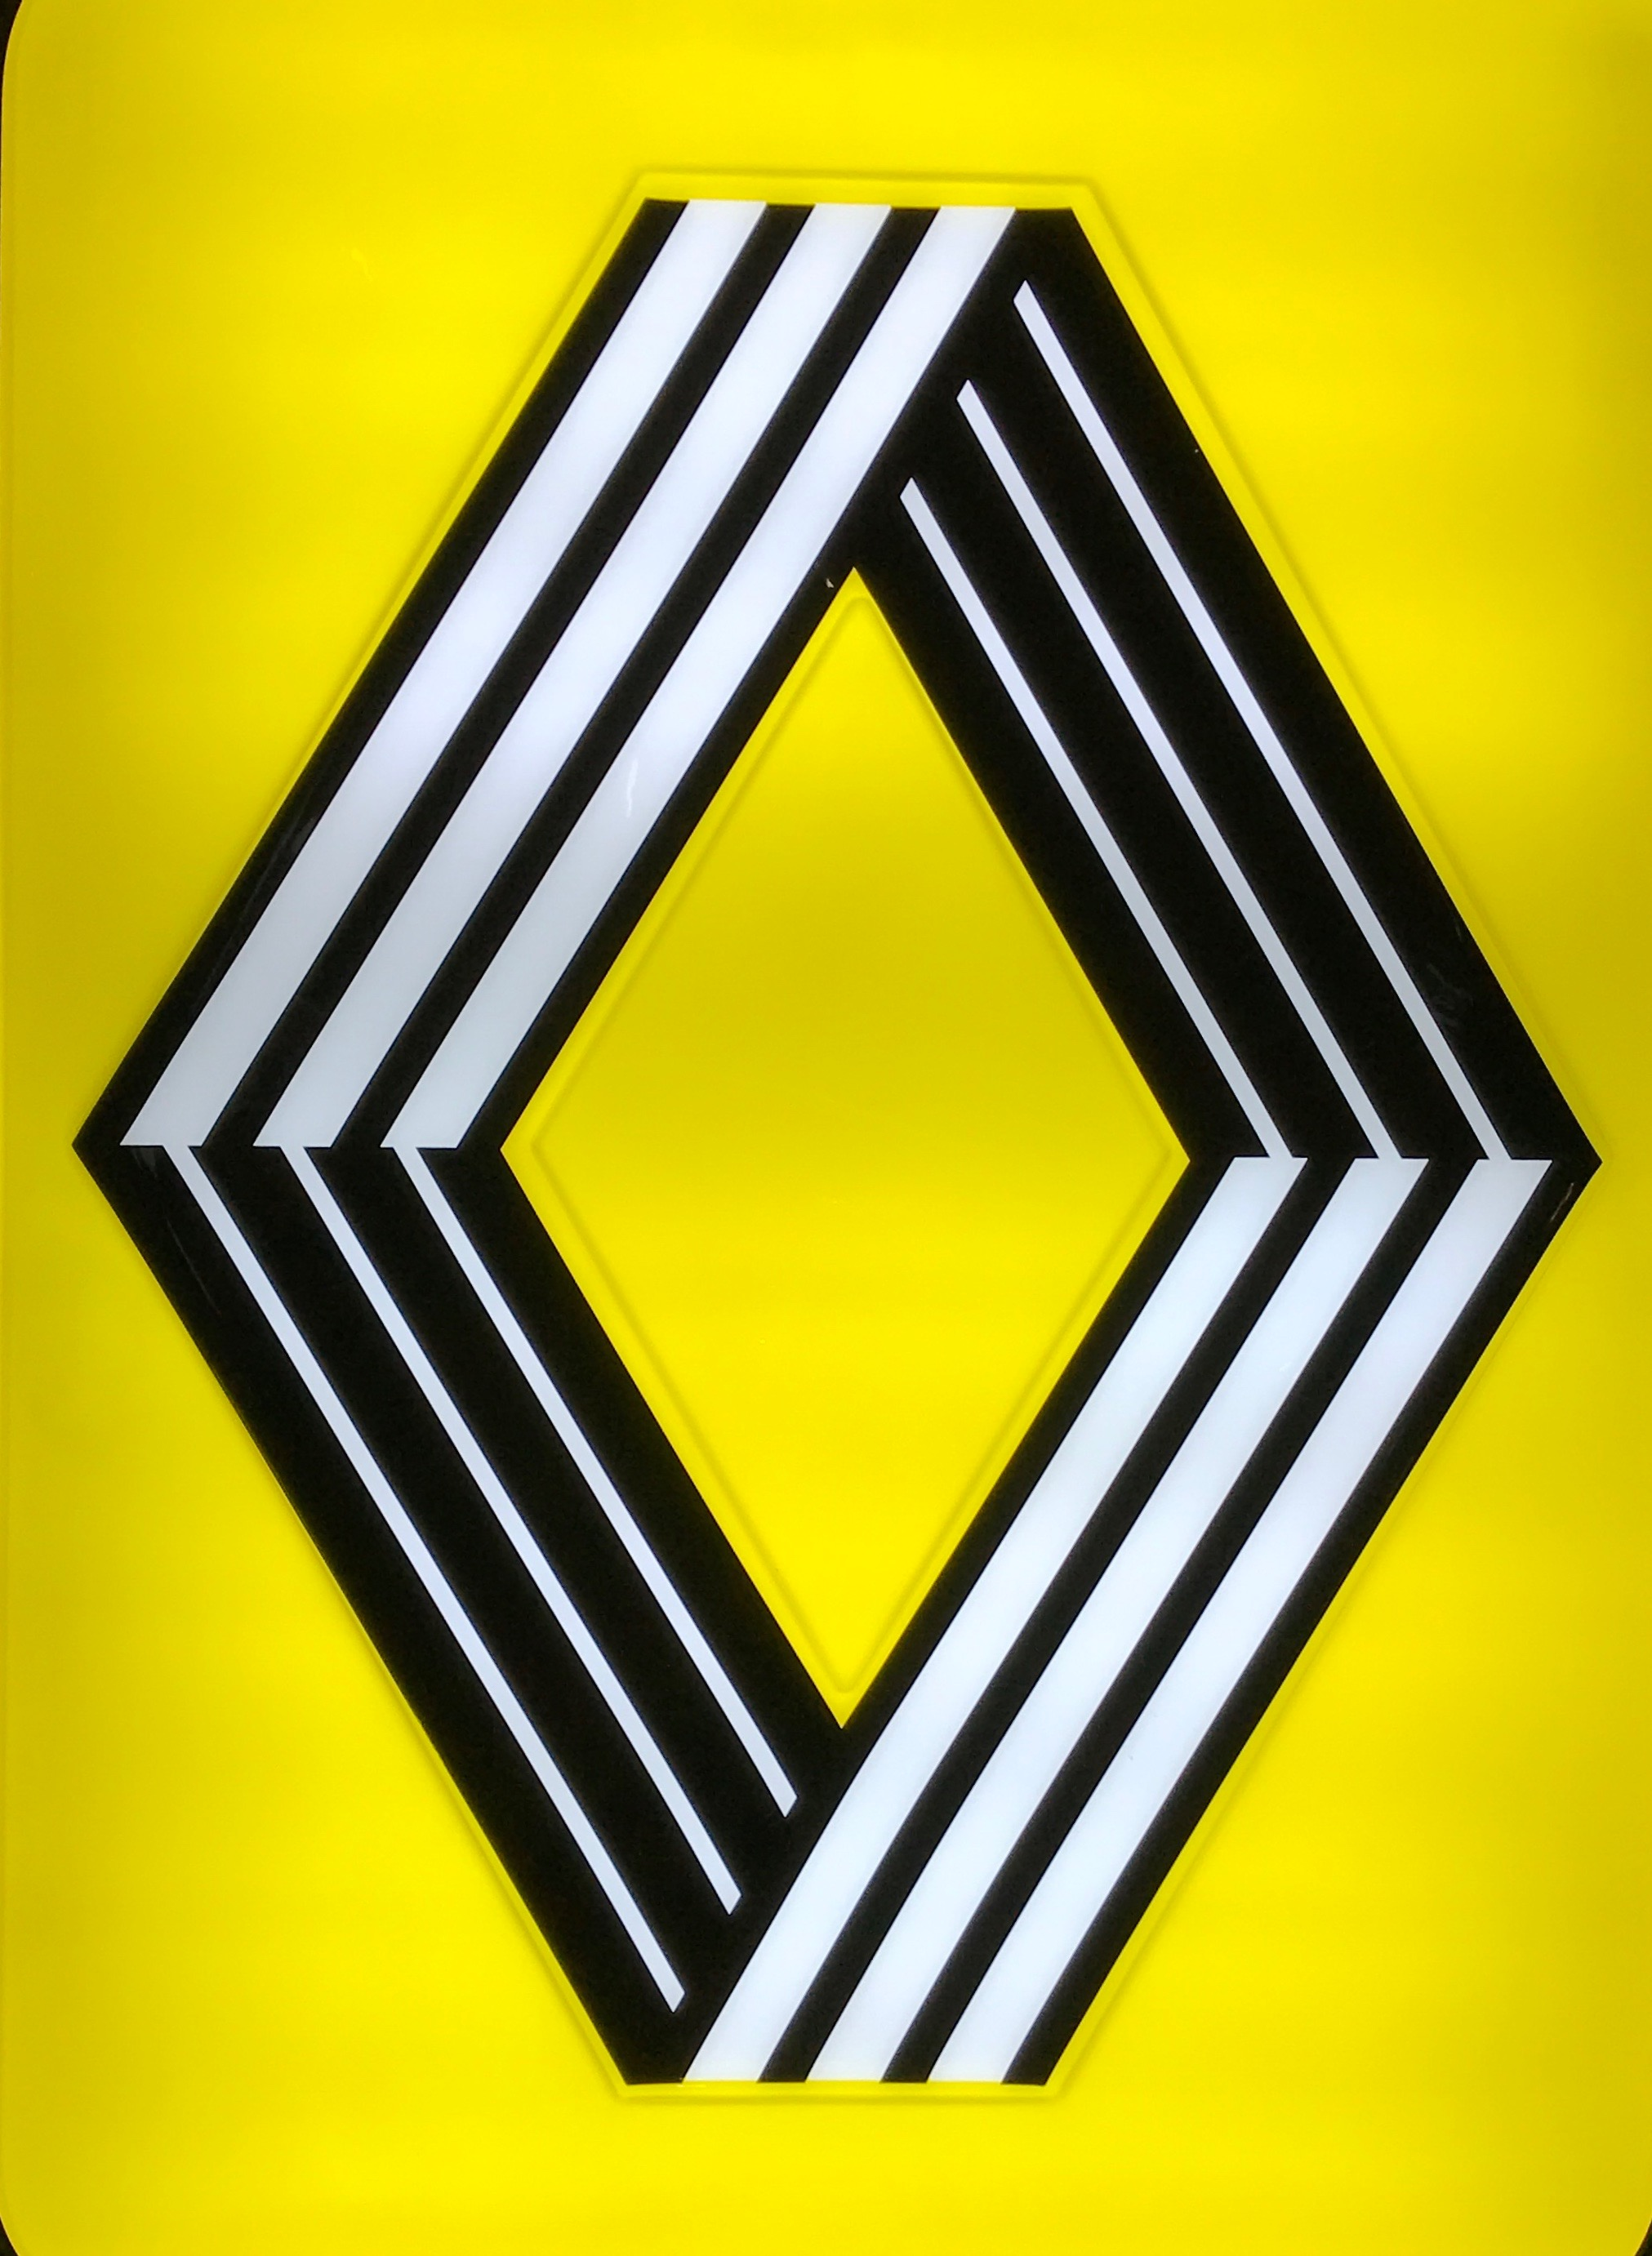 Varsarely designed the Renault logo in 1967